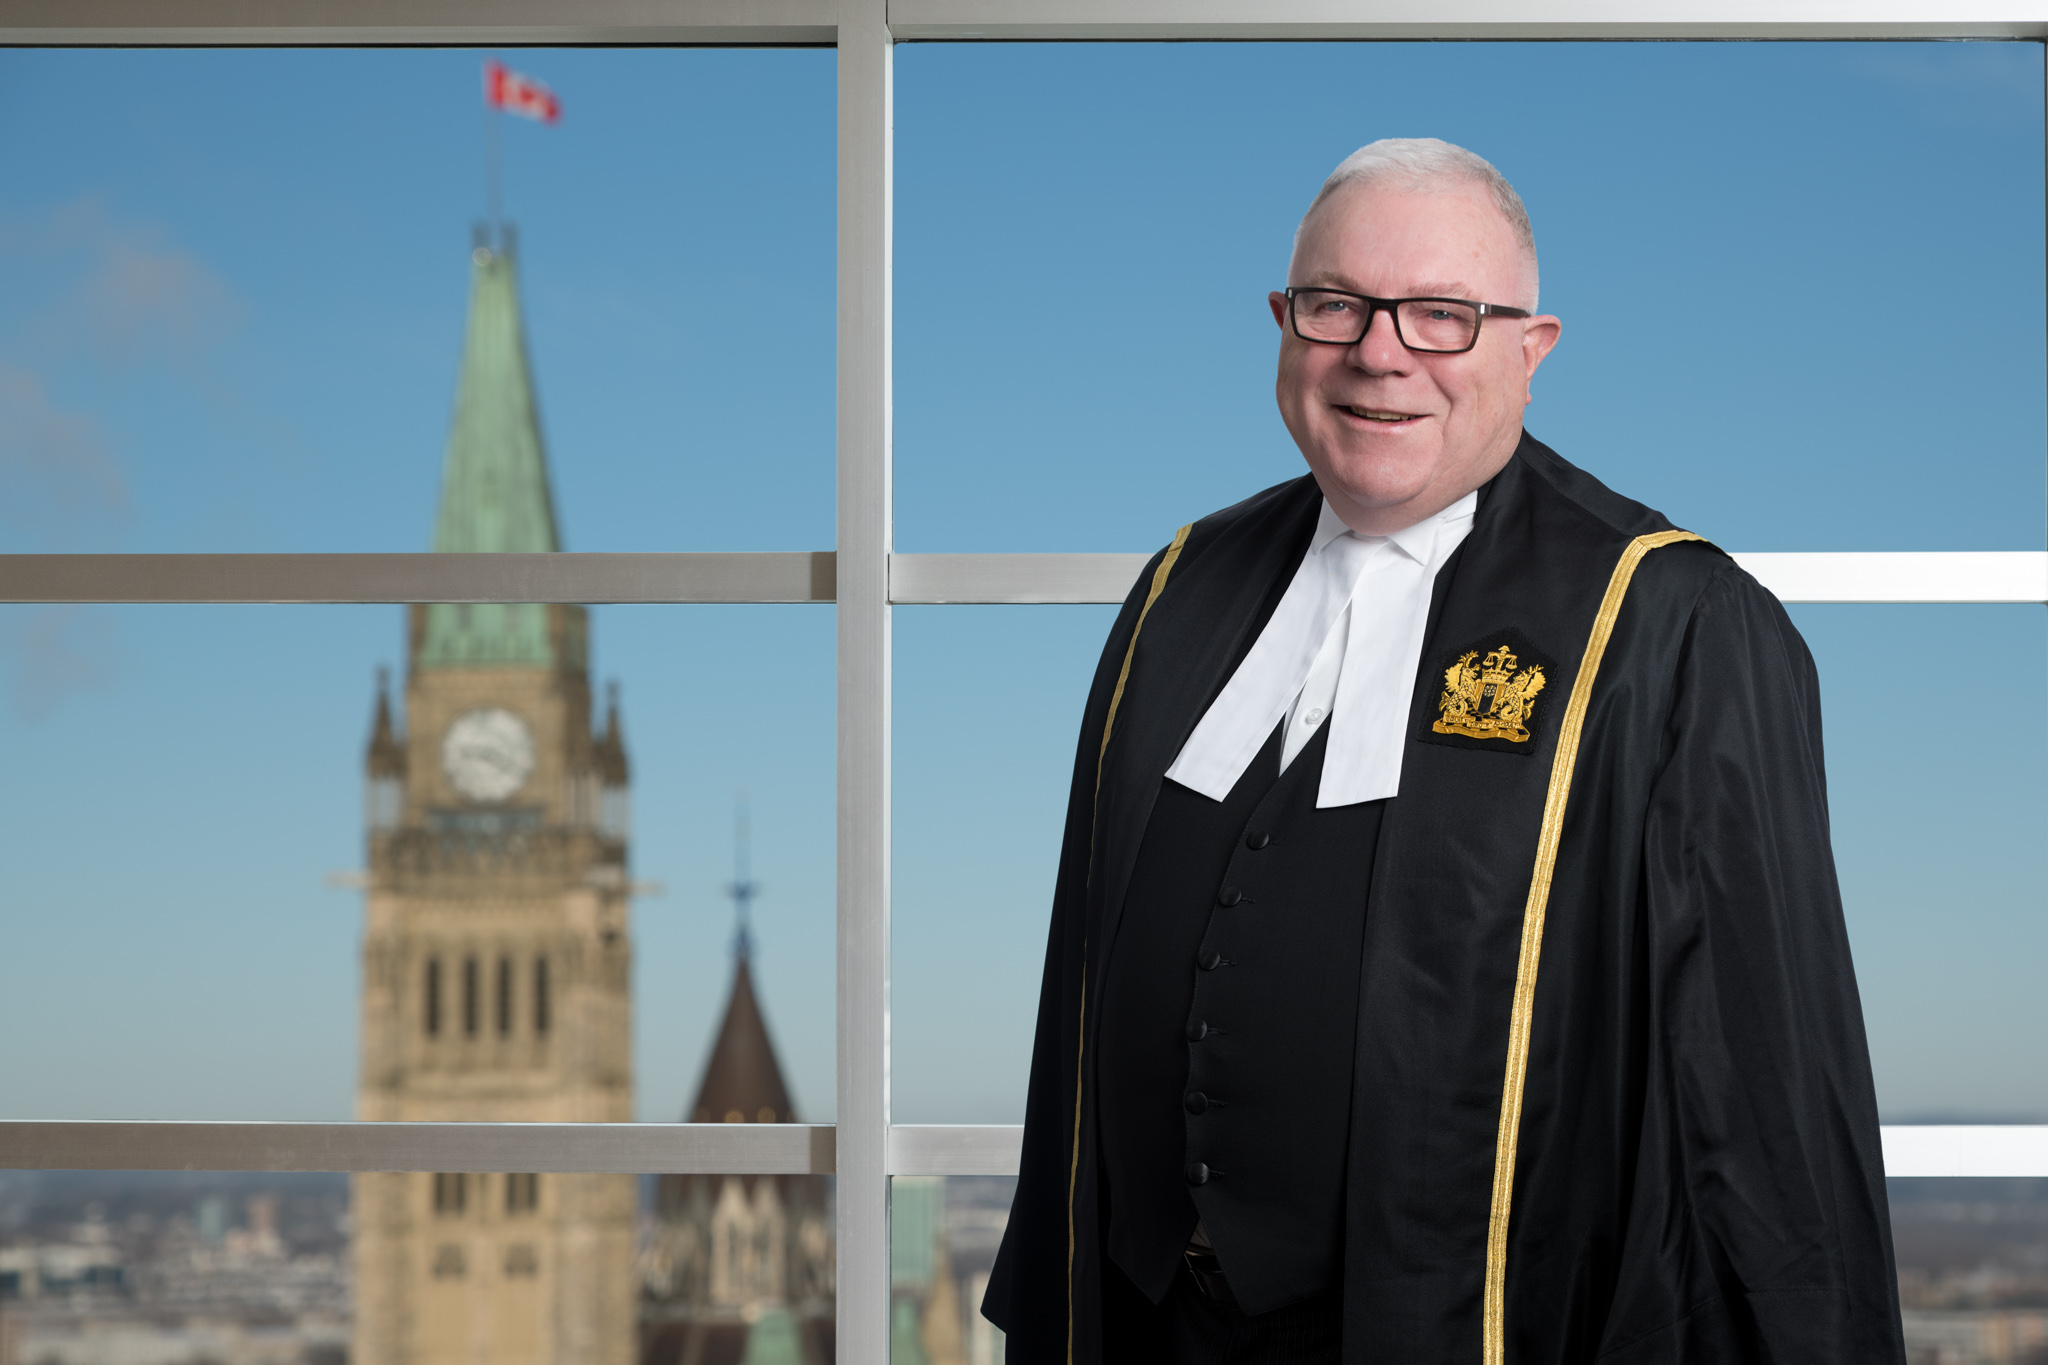 The Honourable Michael L. Phelan